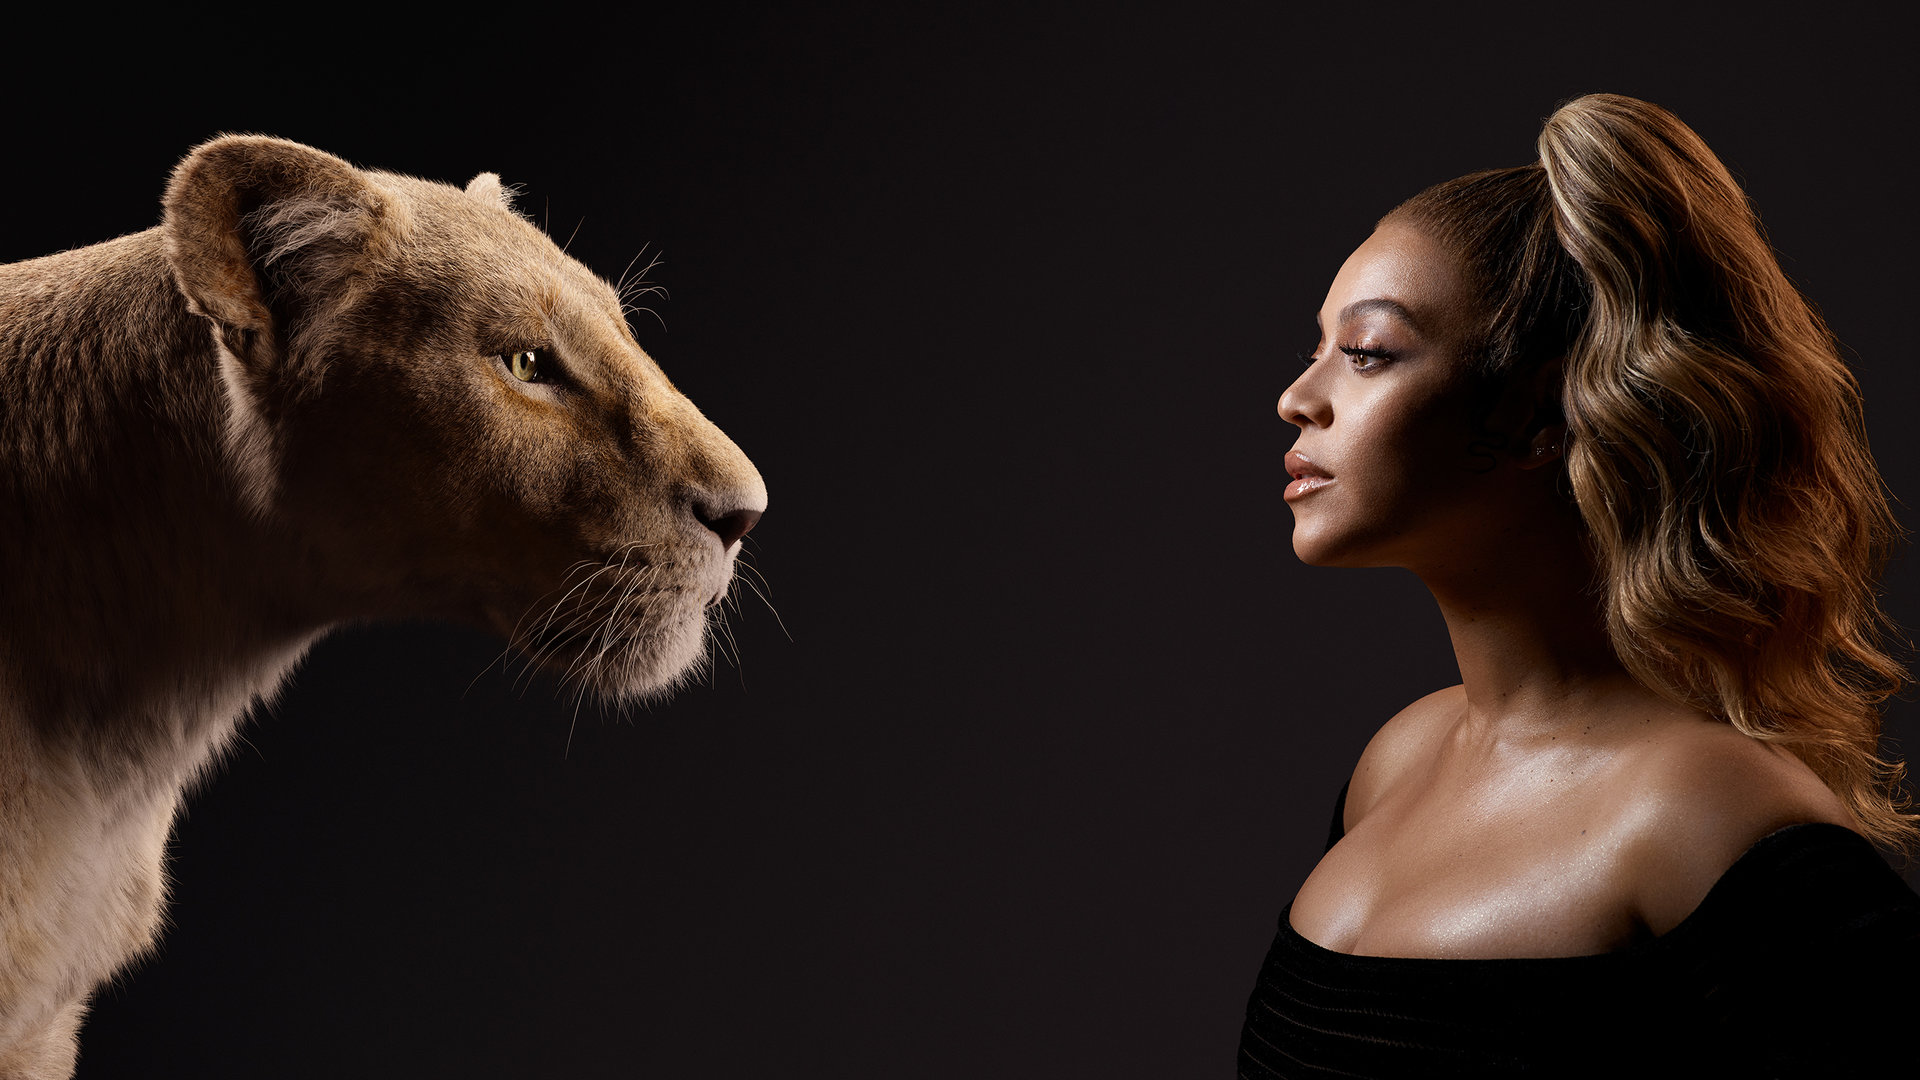 Beyonce, Disney, The Lion King, News Mobile, News Mobile India